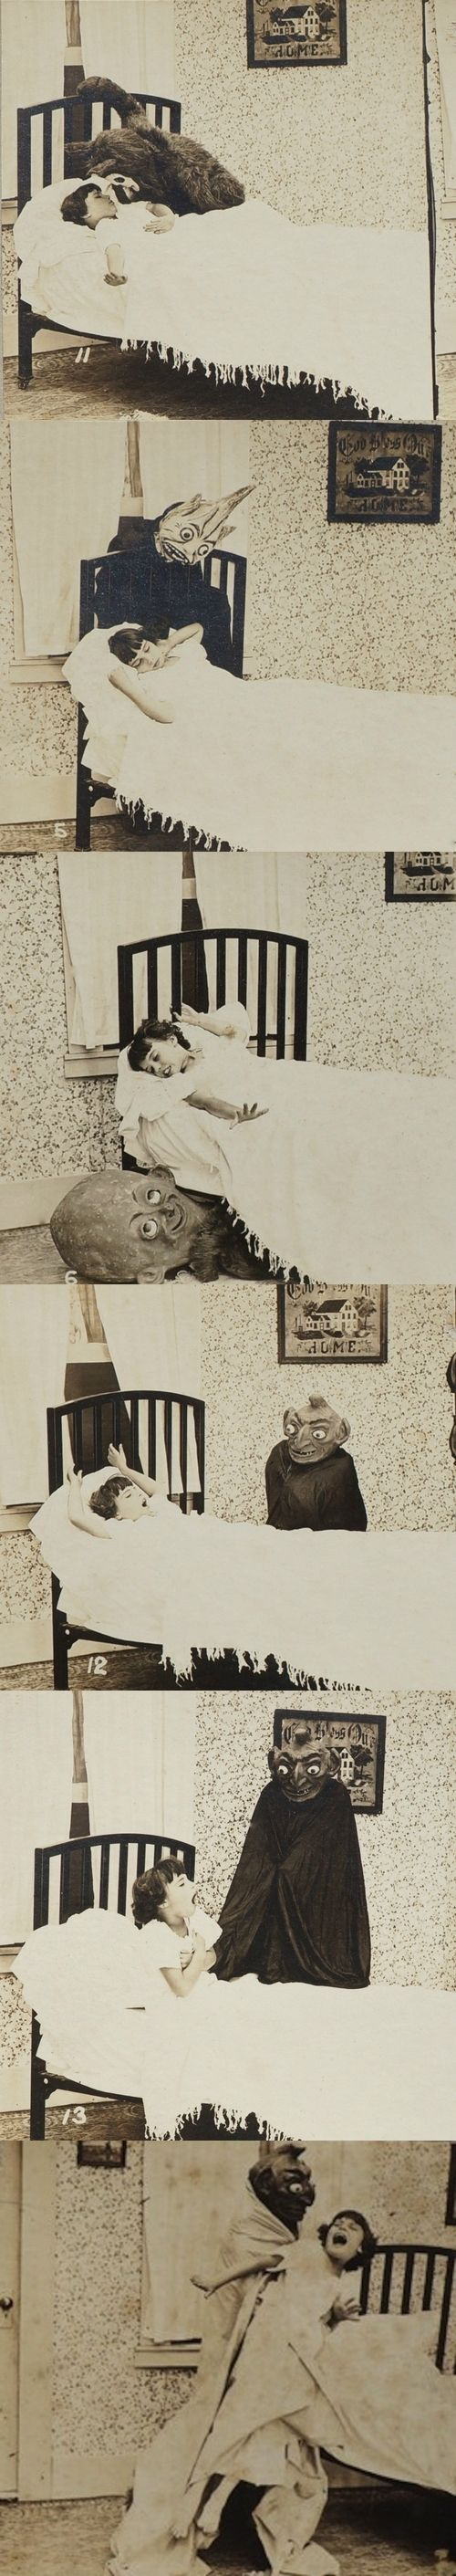 "BOOGIE MAN child & goblins bedtime DROP CARD series of stereoviews, 1923. ""The Goblins will get you if you don't watch out""."